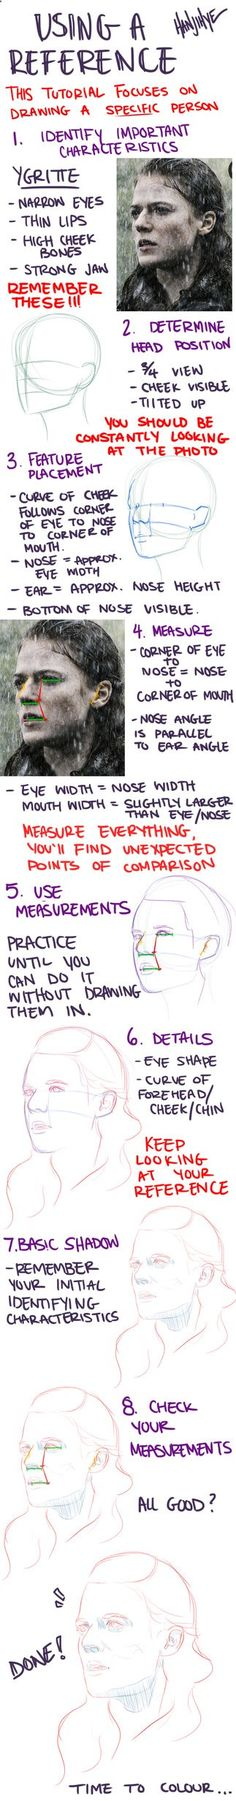 Pencil Portrait Mastery - A portrait tutorial in response to a tumblr ask. Let me know if you have any questions! NOTE: Measuring is really the most important step (in my opinion). Really, MEASURE EVERYTHING ITS SUPER HELPF... Discover The Secrets Of Drawing Realistic Pencil Portraits